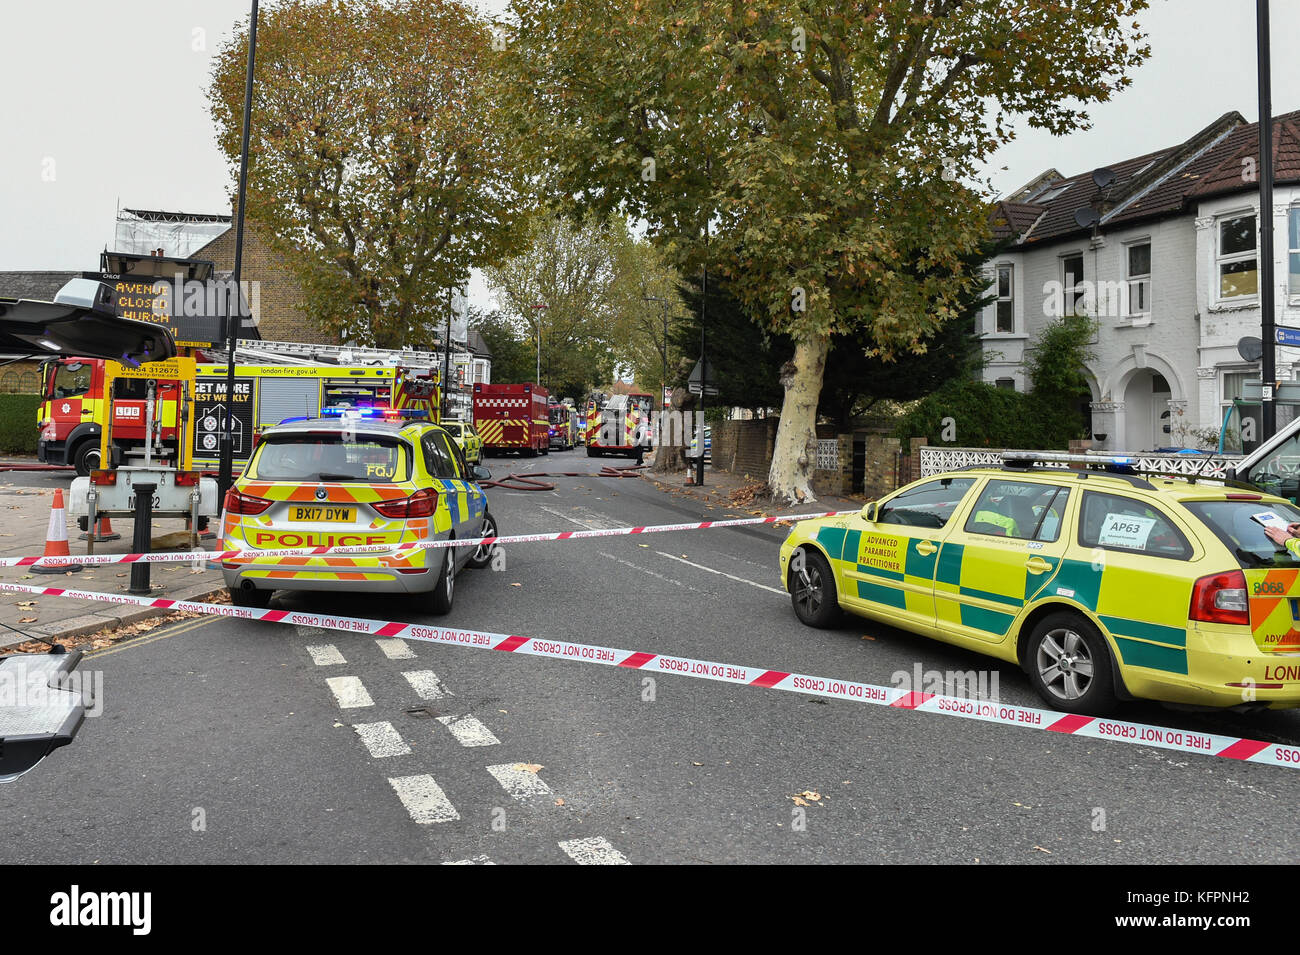 London, United Kingdom. 31st October 2017. A man has been rescued from a house fire in Leythe Road in Acton, London. Stock Photo